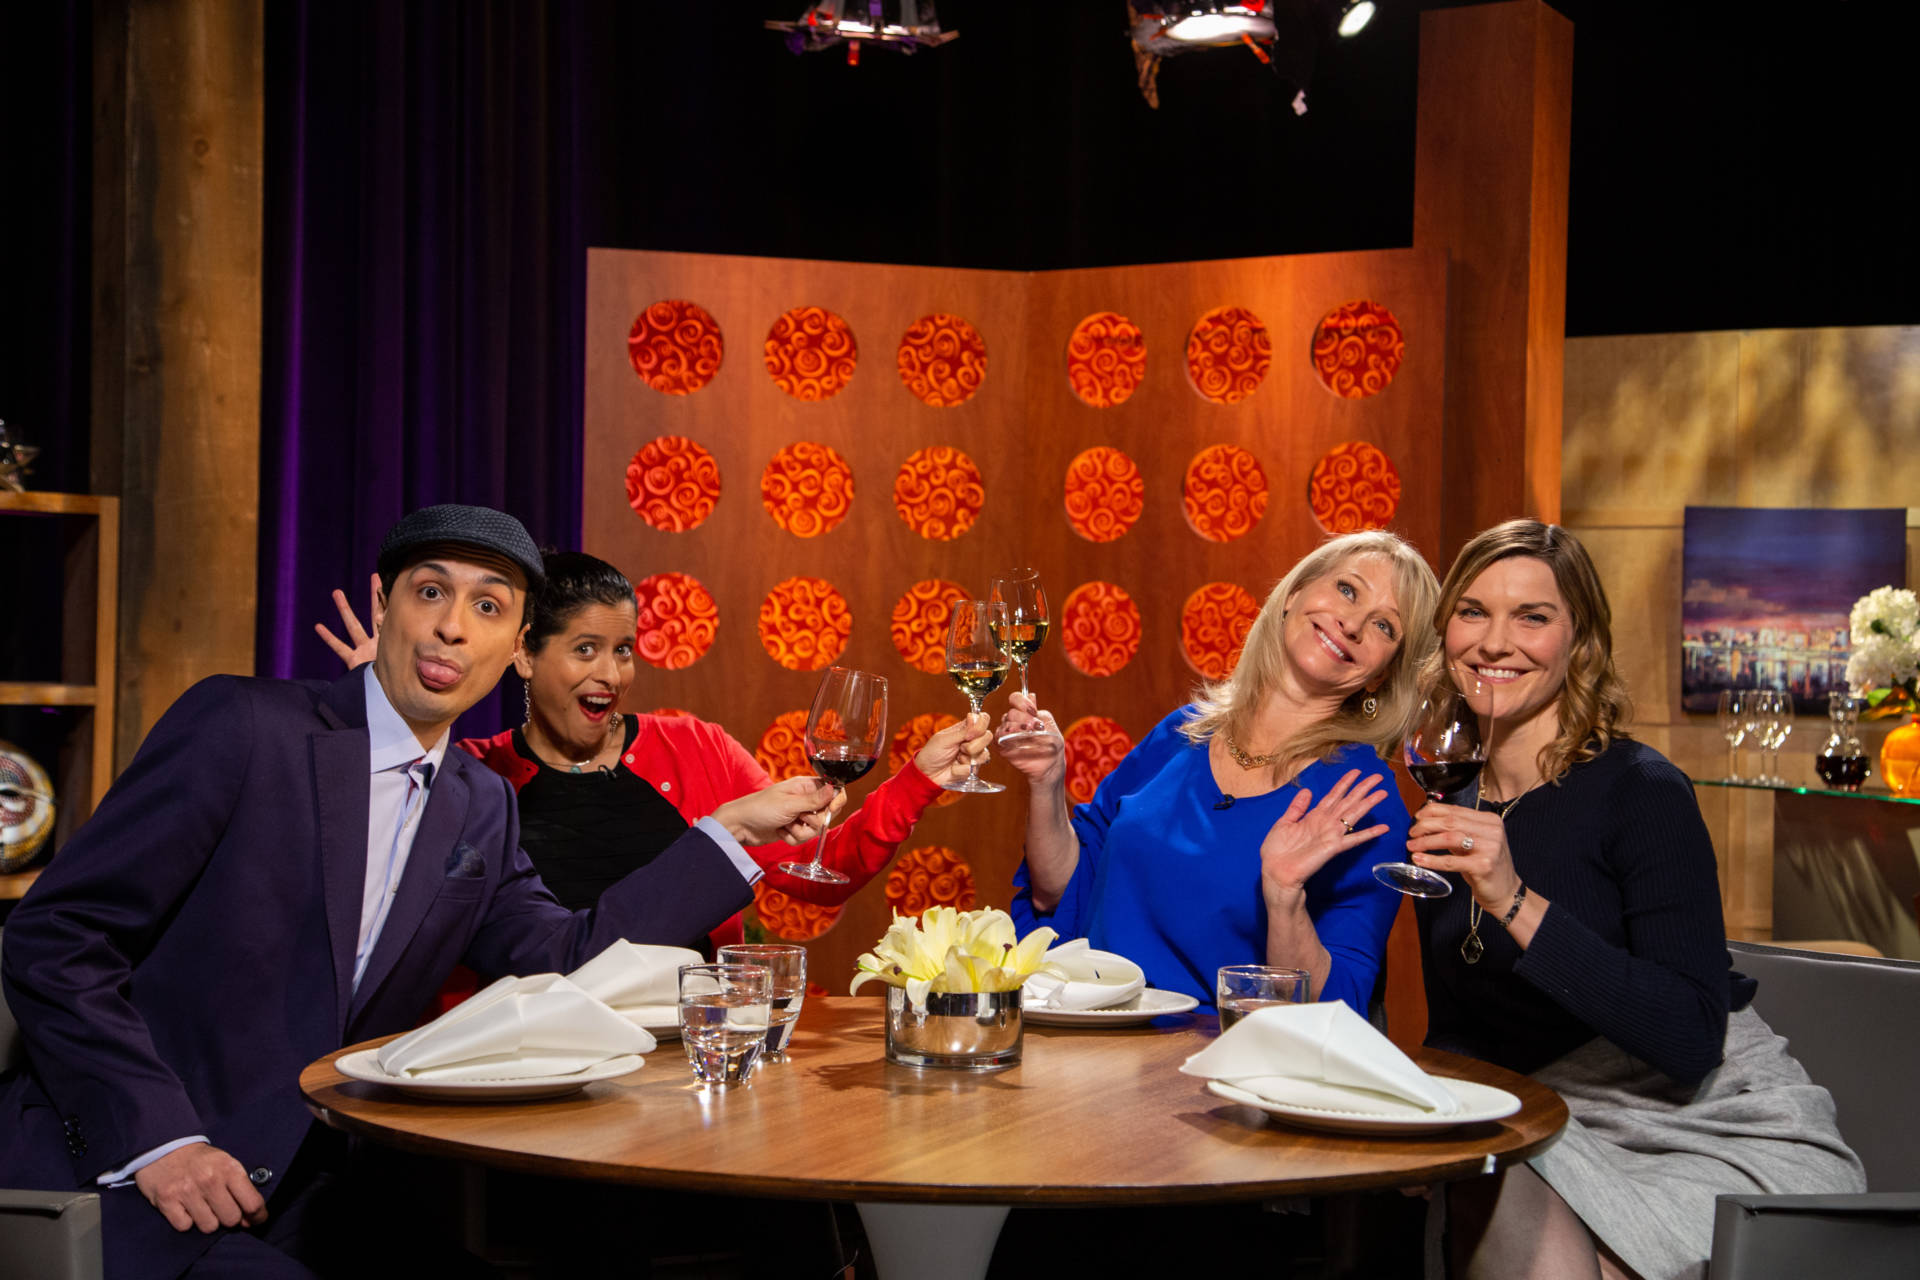 Host Leslie Sbrocco and guests on the set of season 14 episode 1.